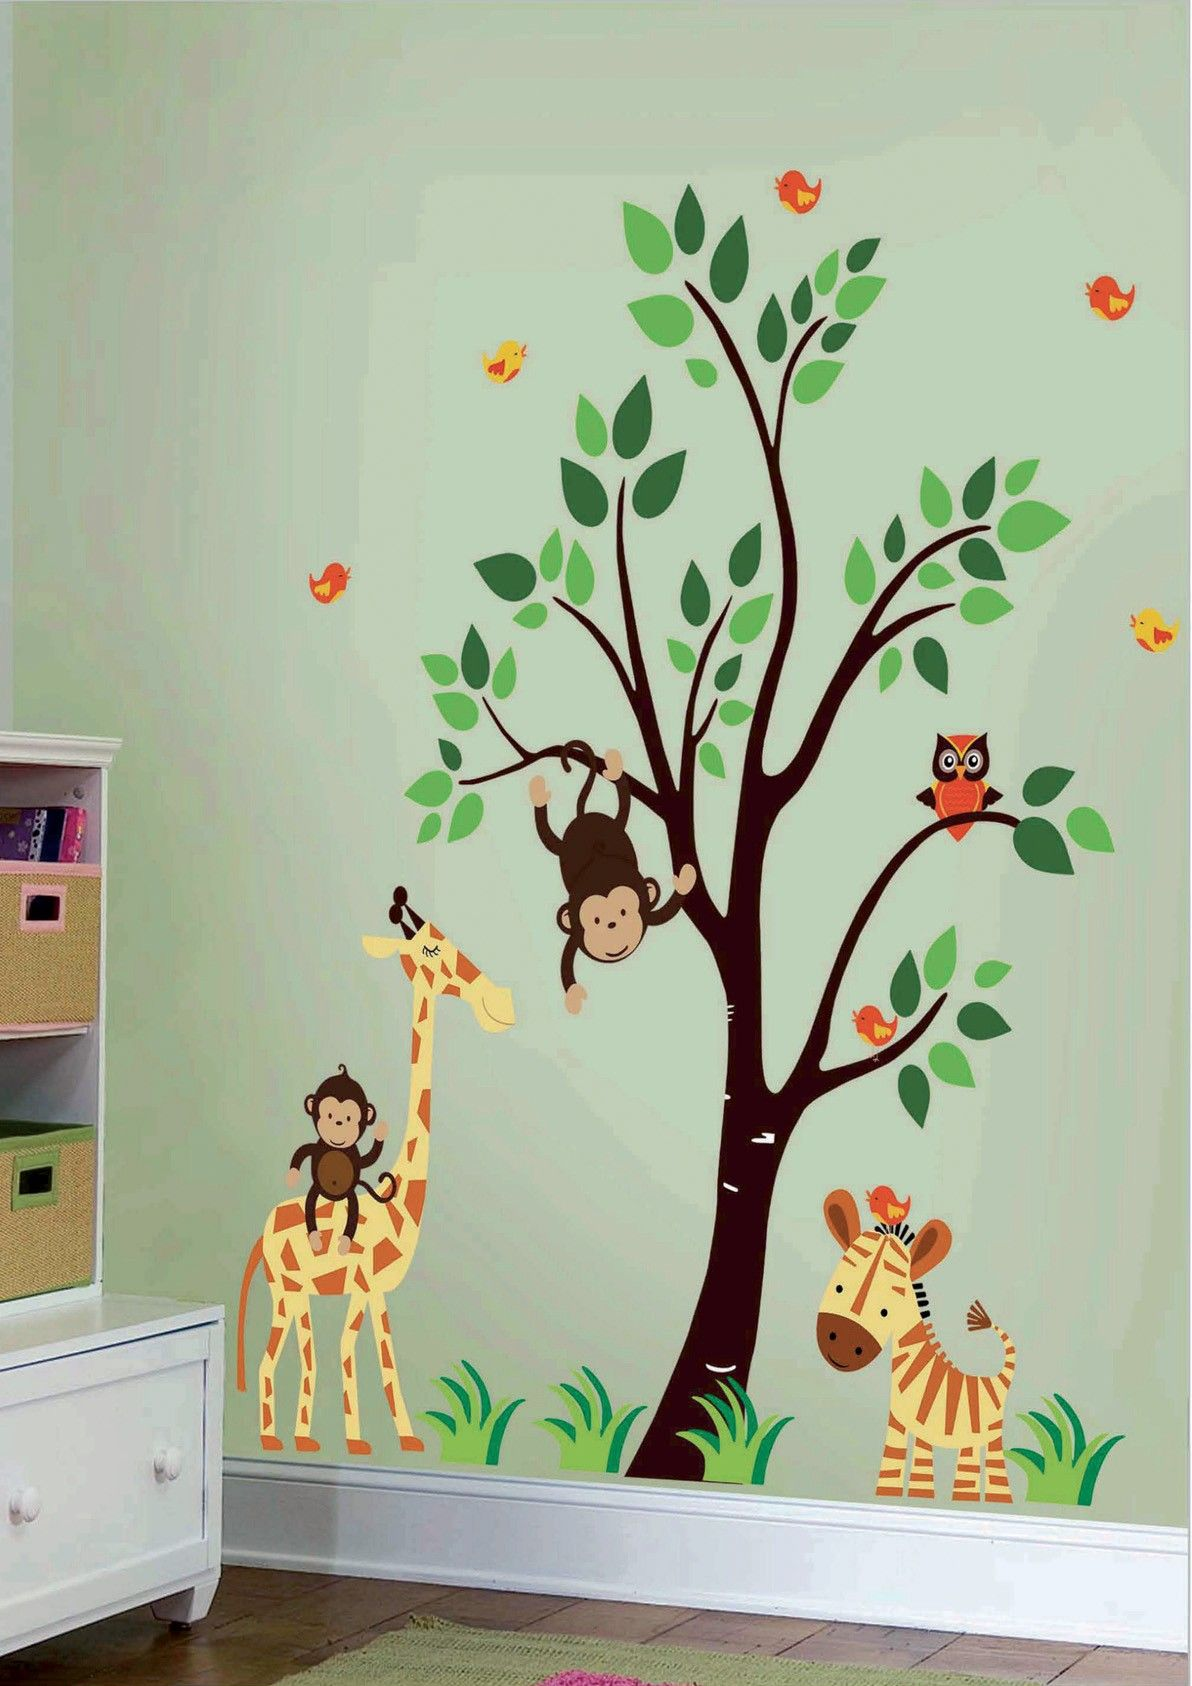 Artistic Vinyl Blik Mural Wall Sticker Jungle Family Decal For Kids Children And Nursery